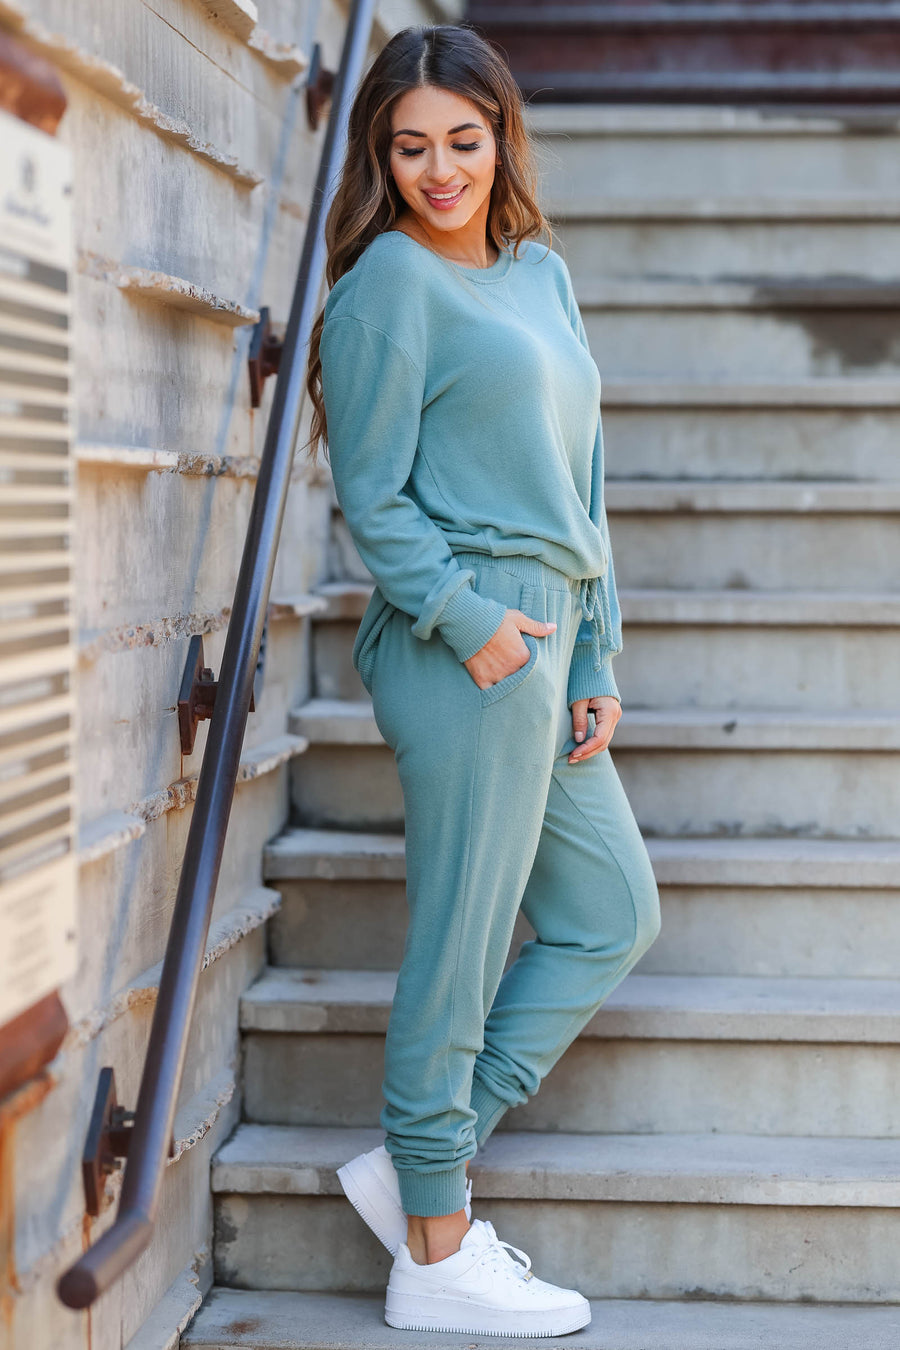 Lost Without You Loungewear - Teal closet candy women's casual super soft brushed knit loungewear long sleeve top joggers front